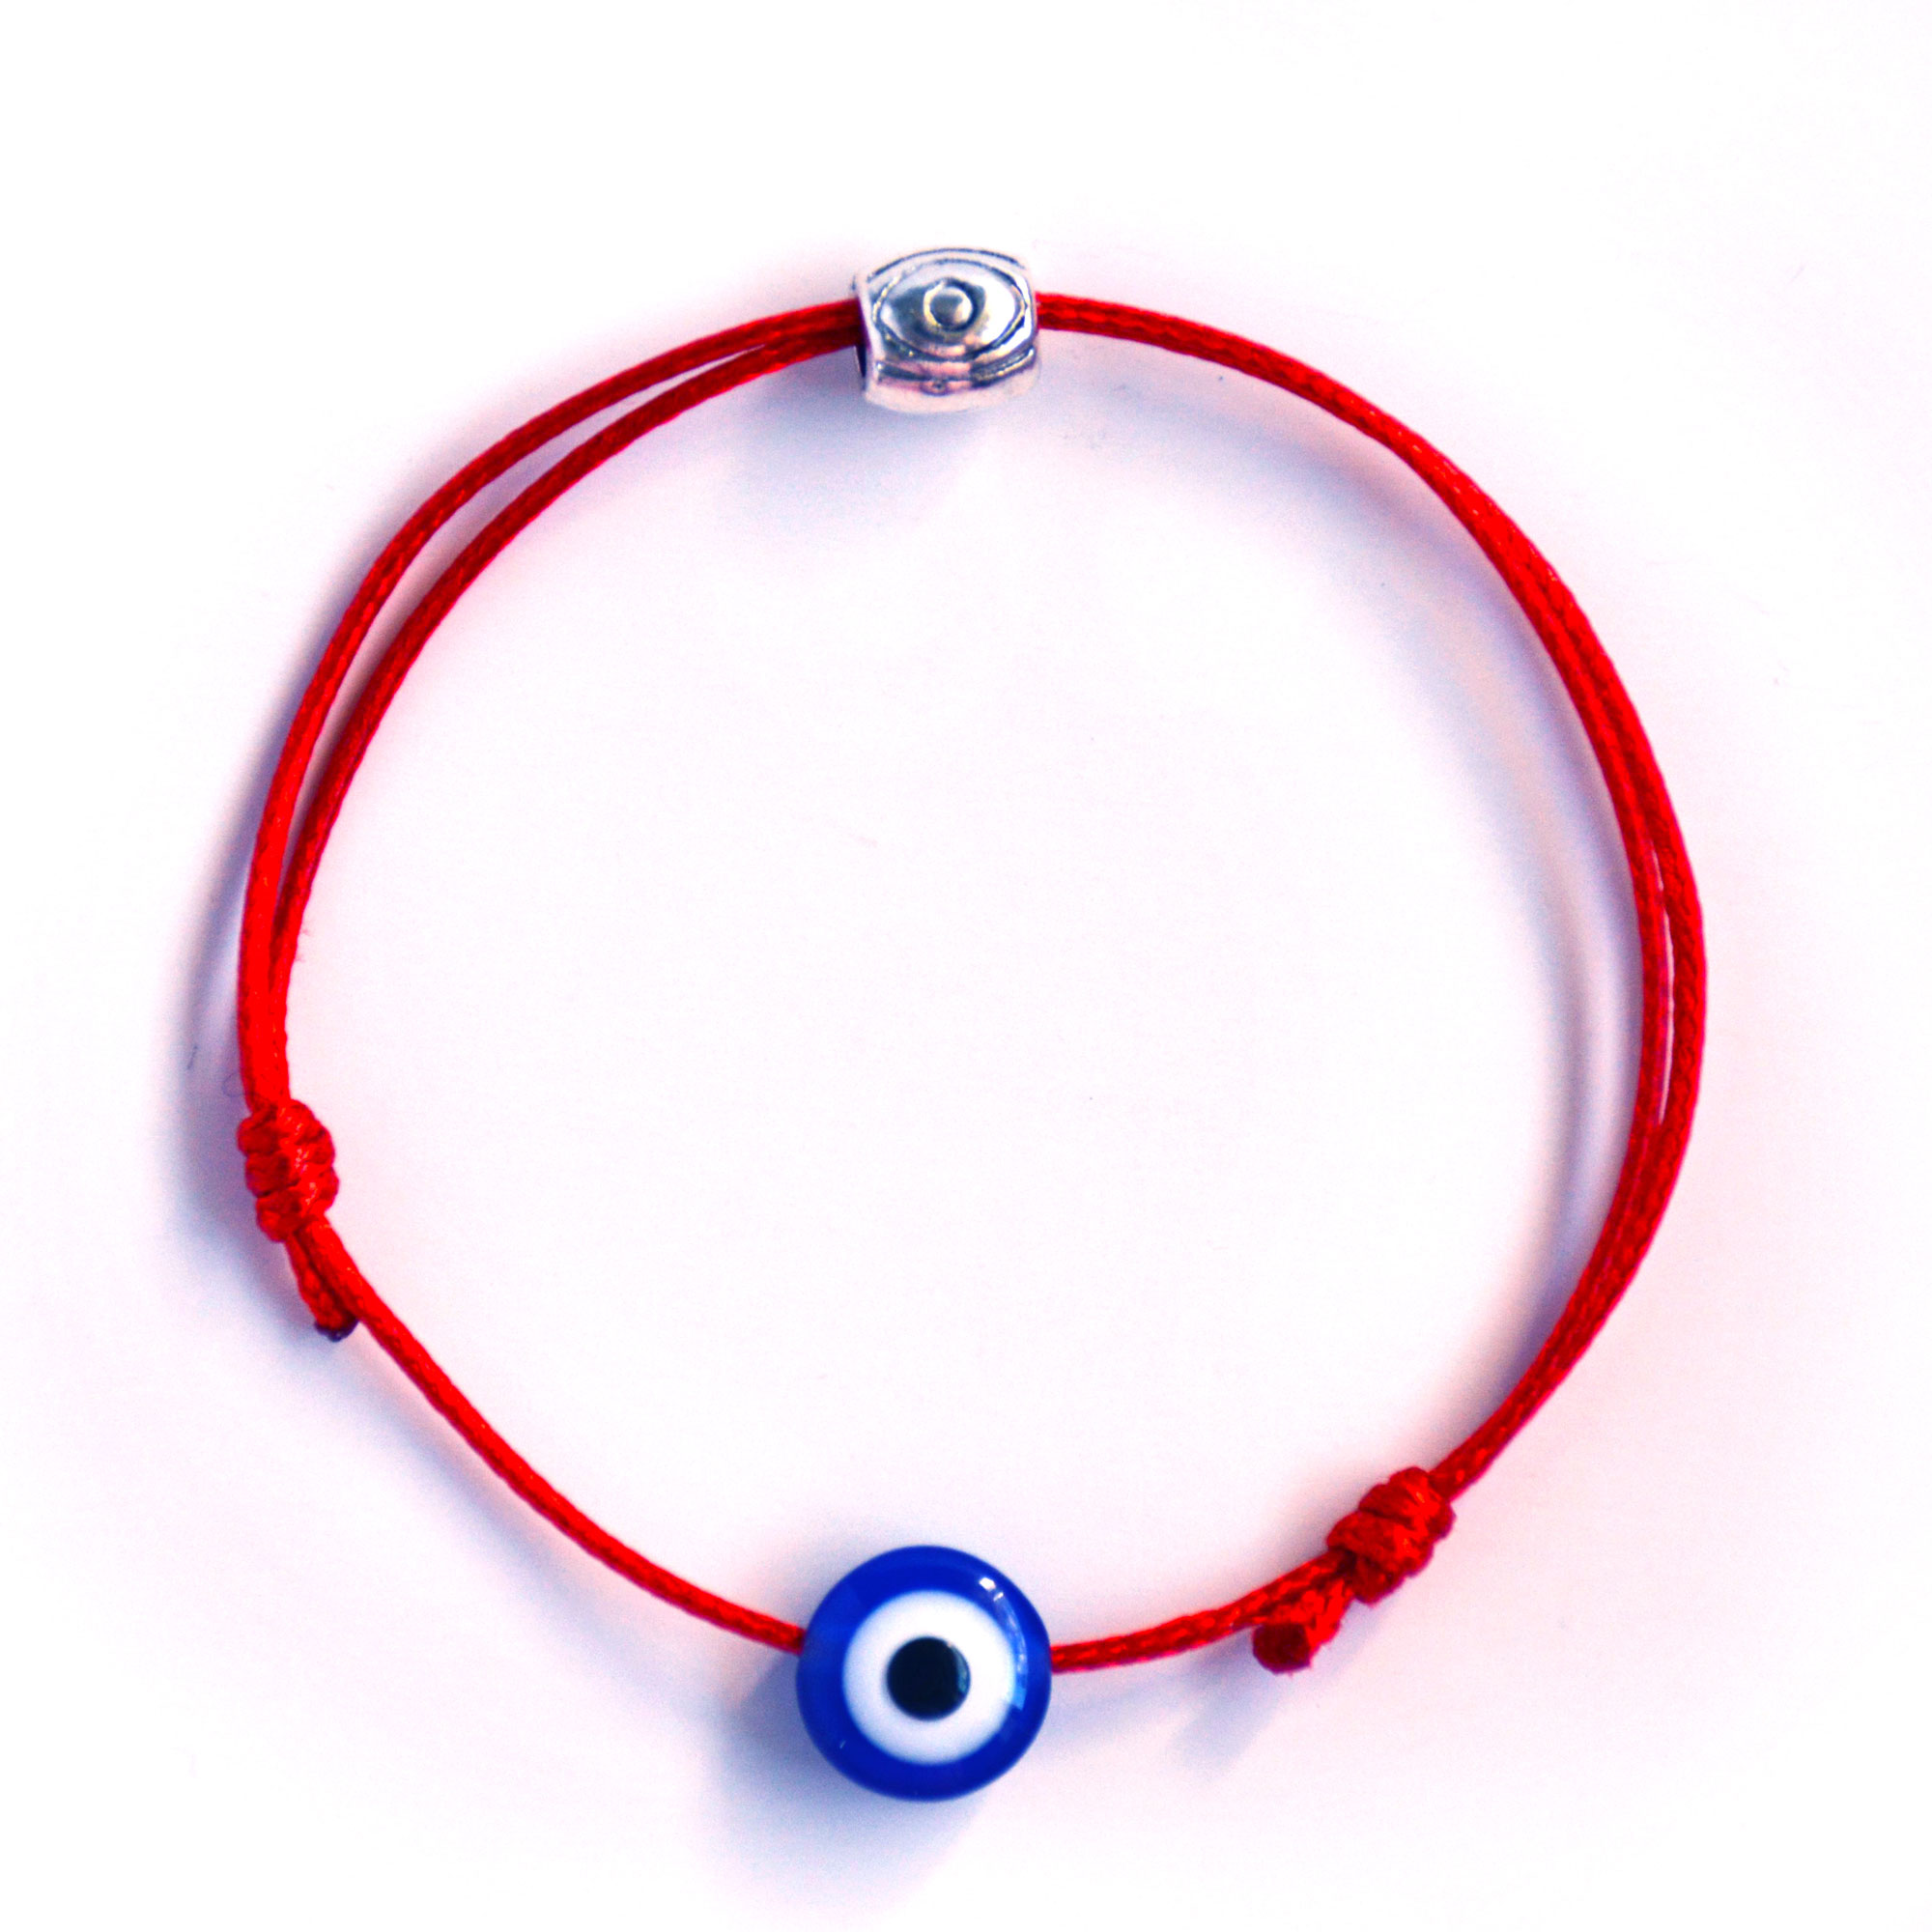 bracelets blue jewelry bracelet custom collections image topaz evil mati eye